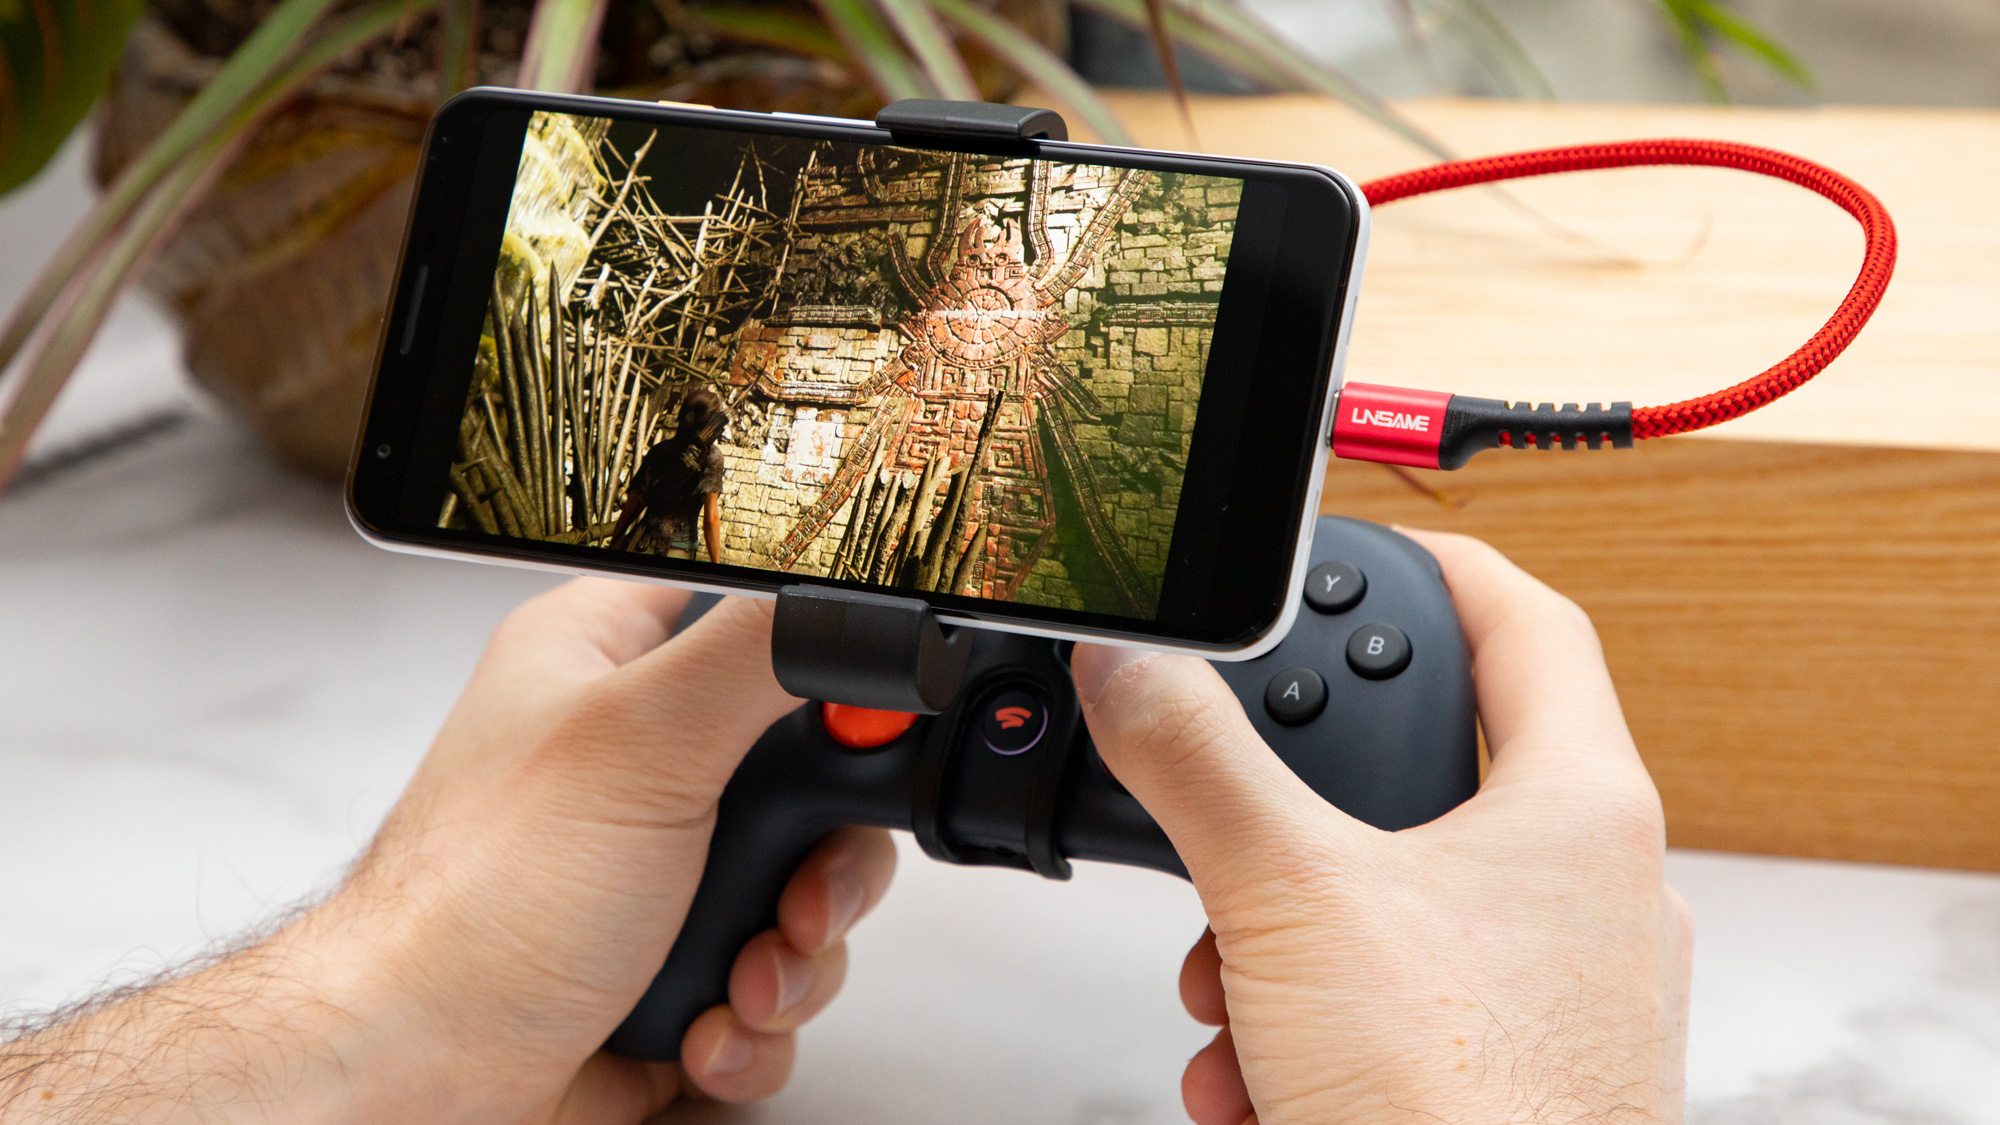 Tips for a Better Google Stadia Gaming Experience